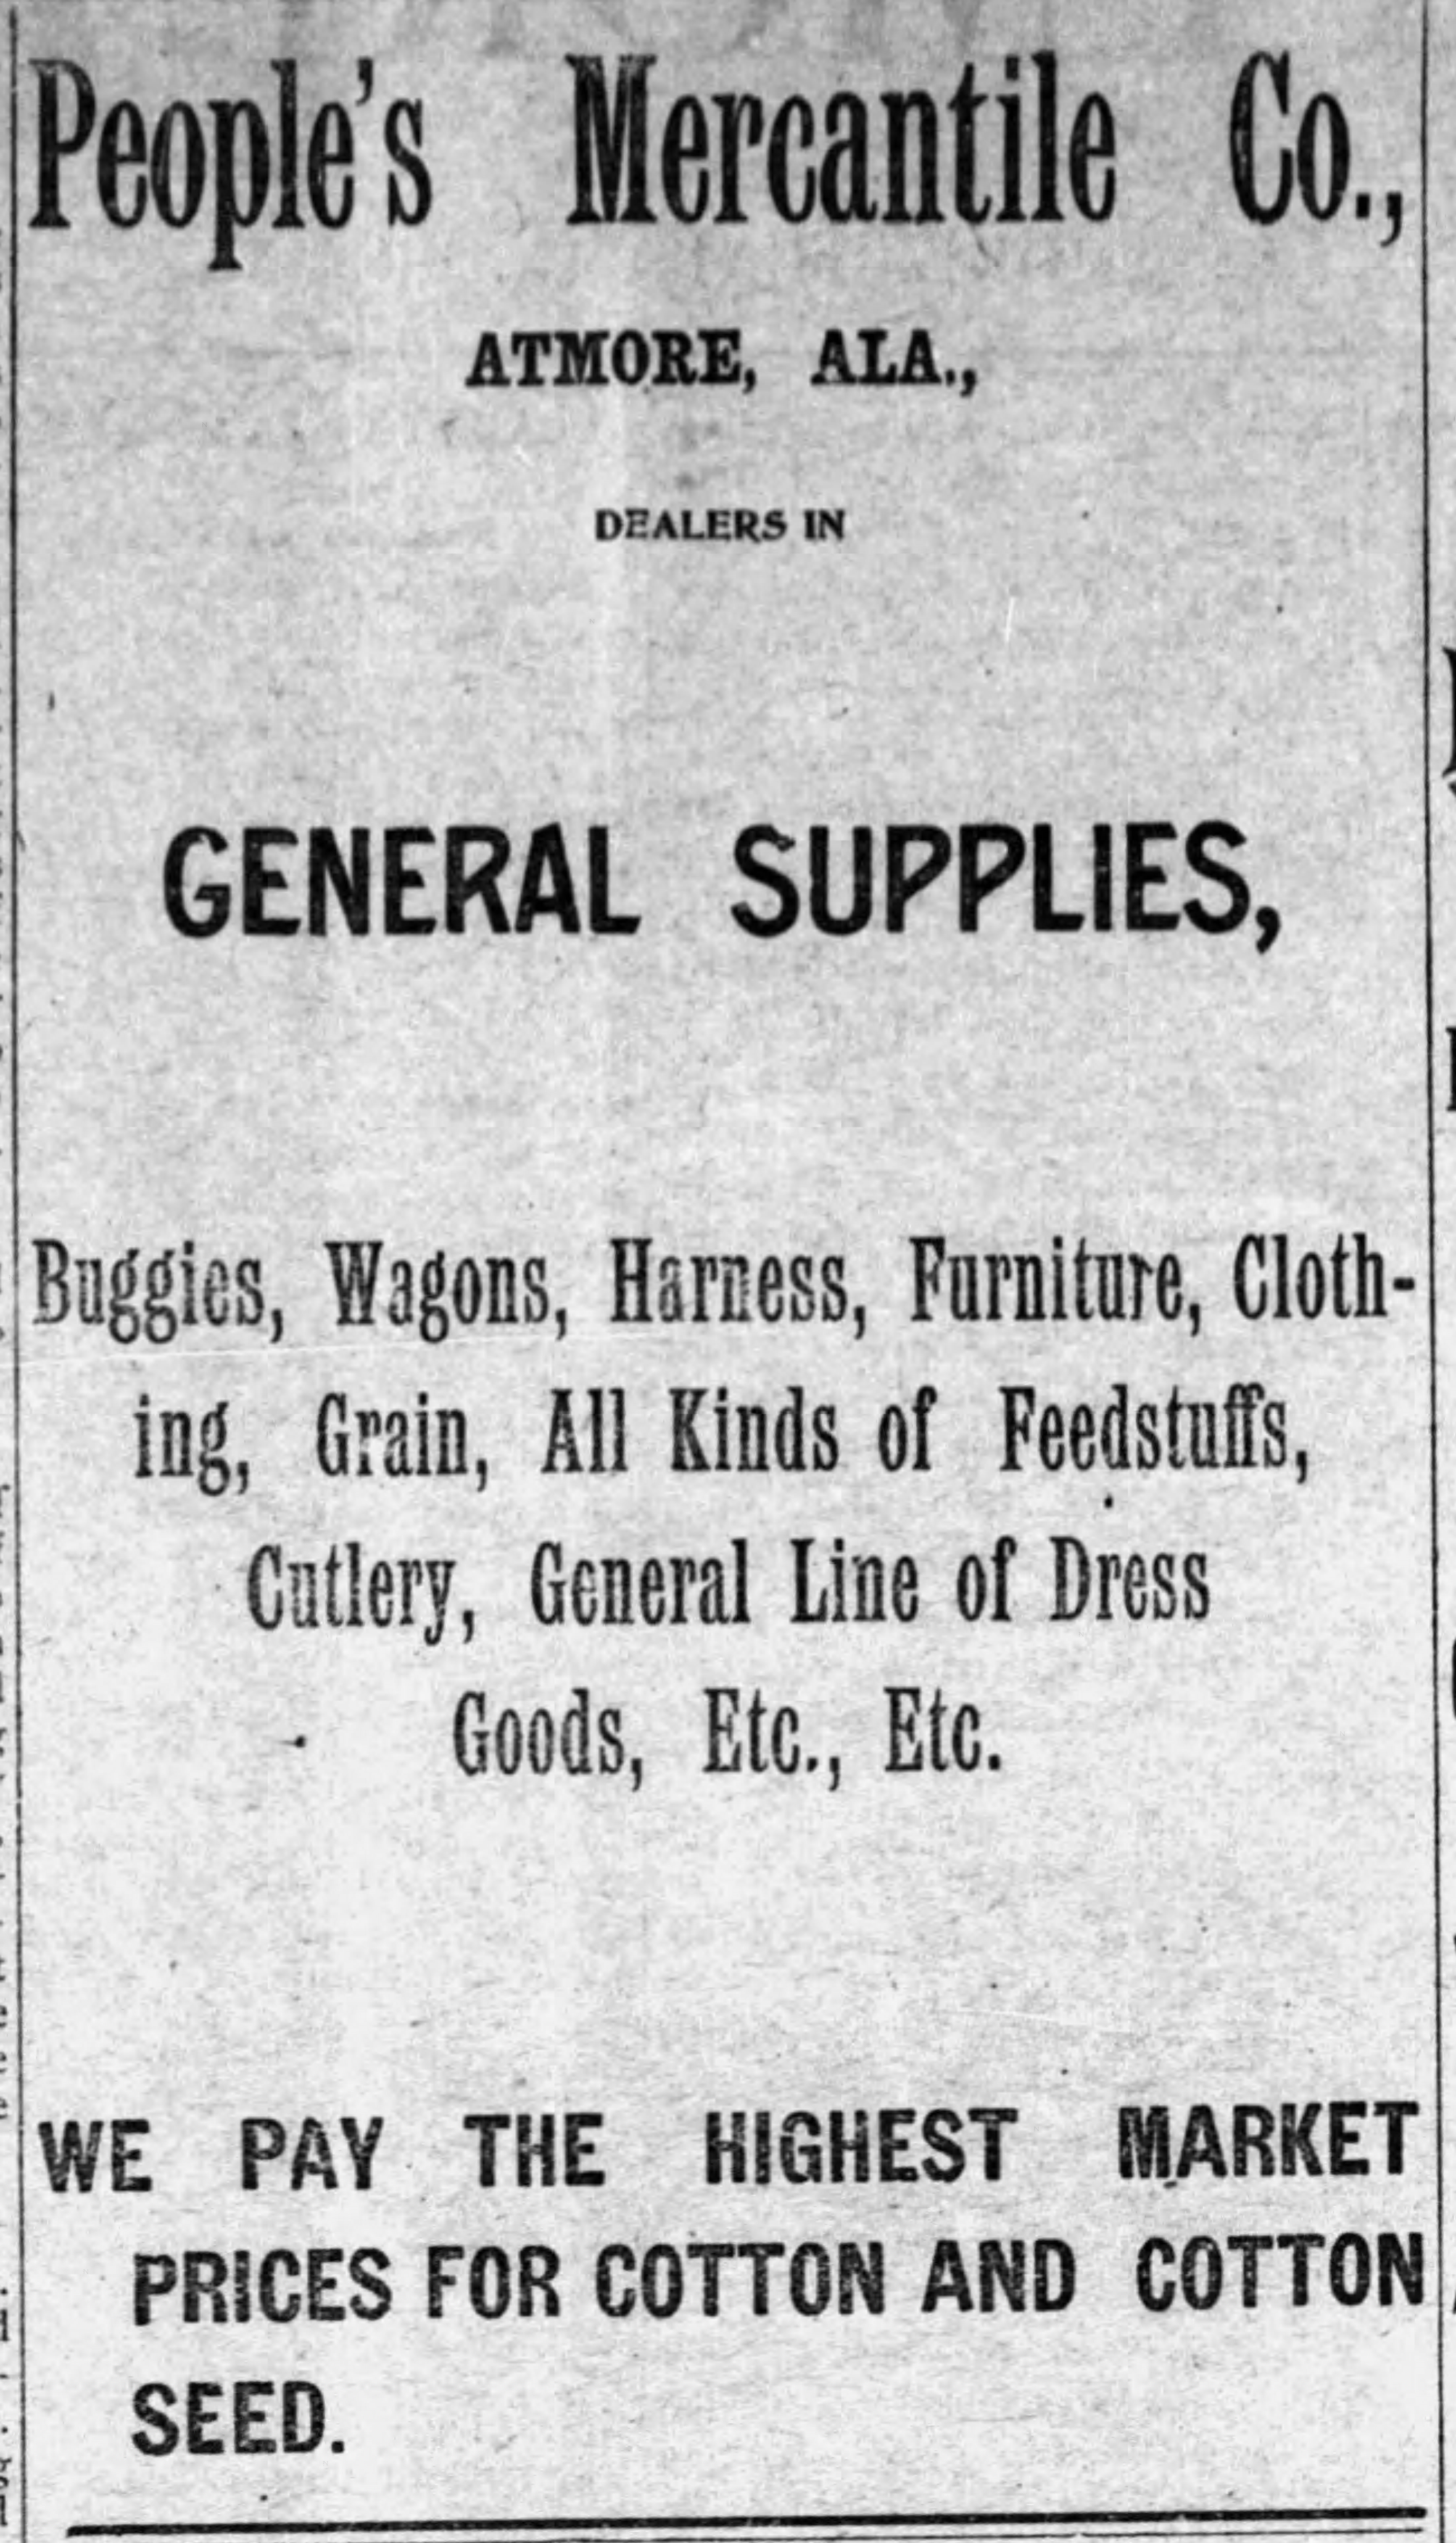 PATRON – Trusted businessmen in Atmore on September 18, 1903 according to The Atmore Record, Alabama